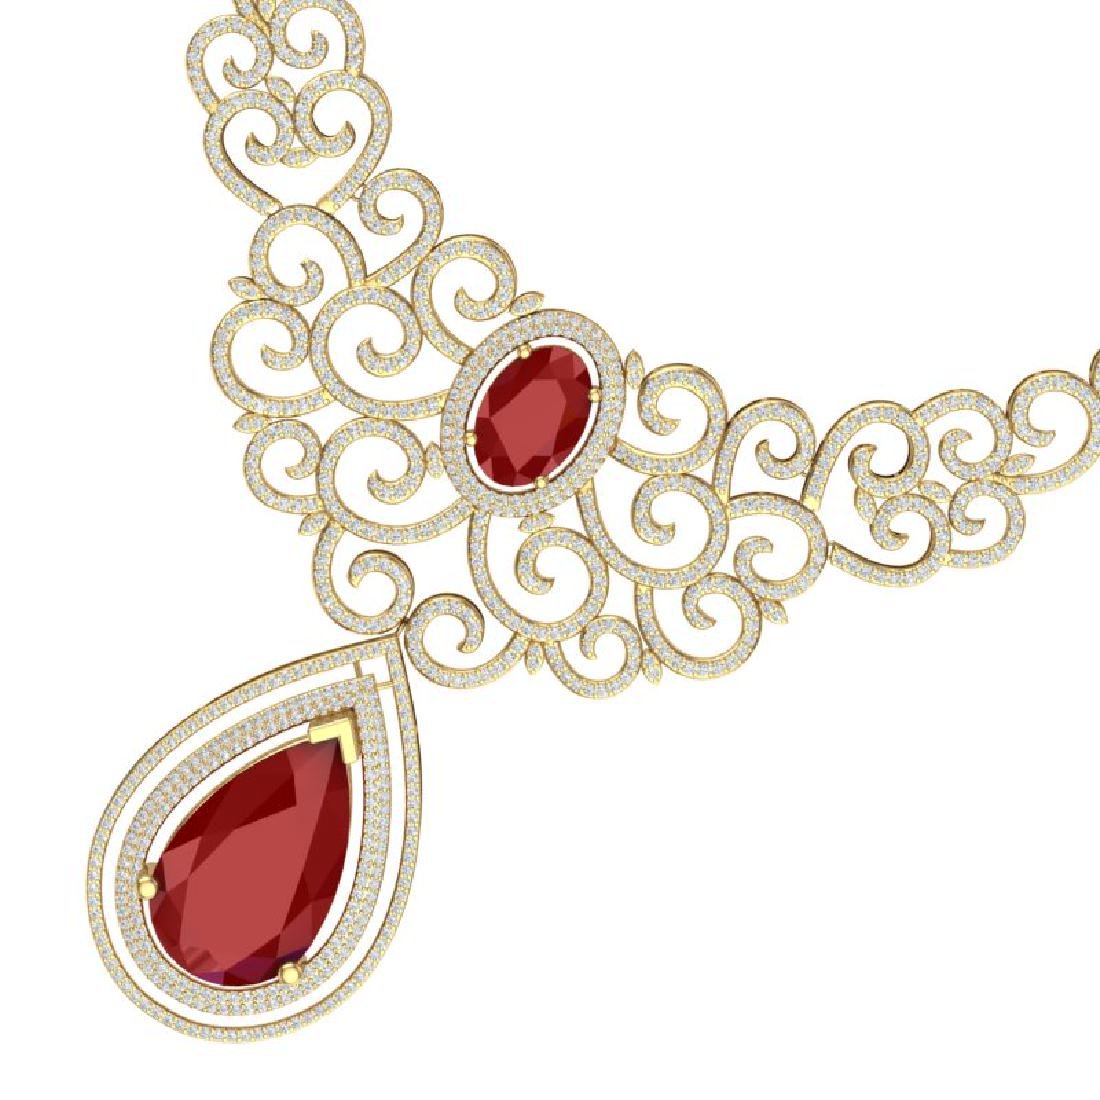 87.52 CTW Royalty Ruby & VS Diamond Necklace 18K Yellow